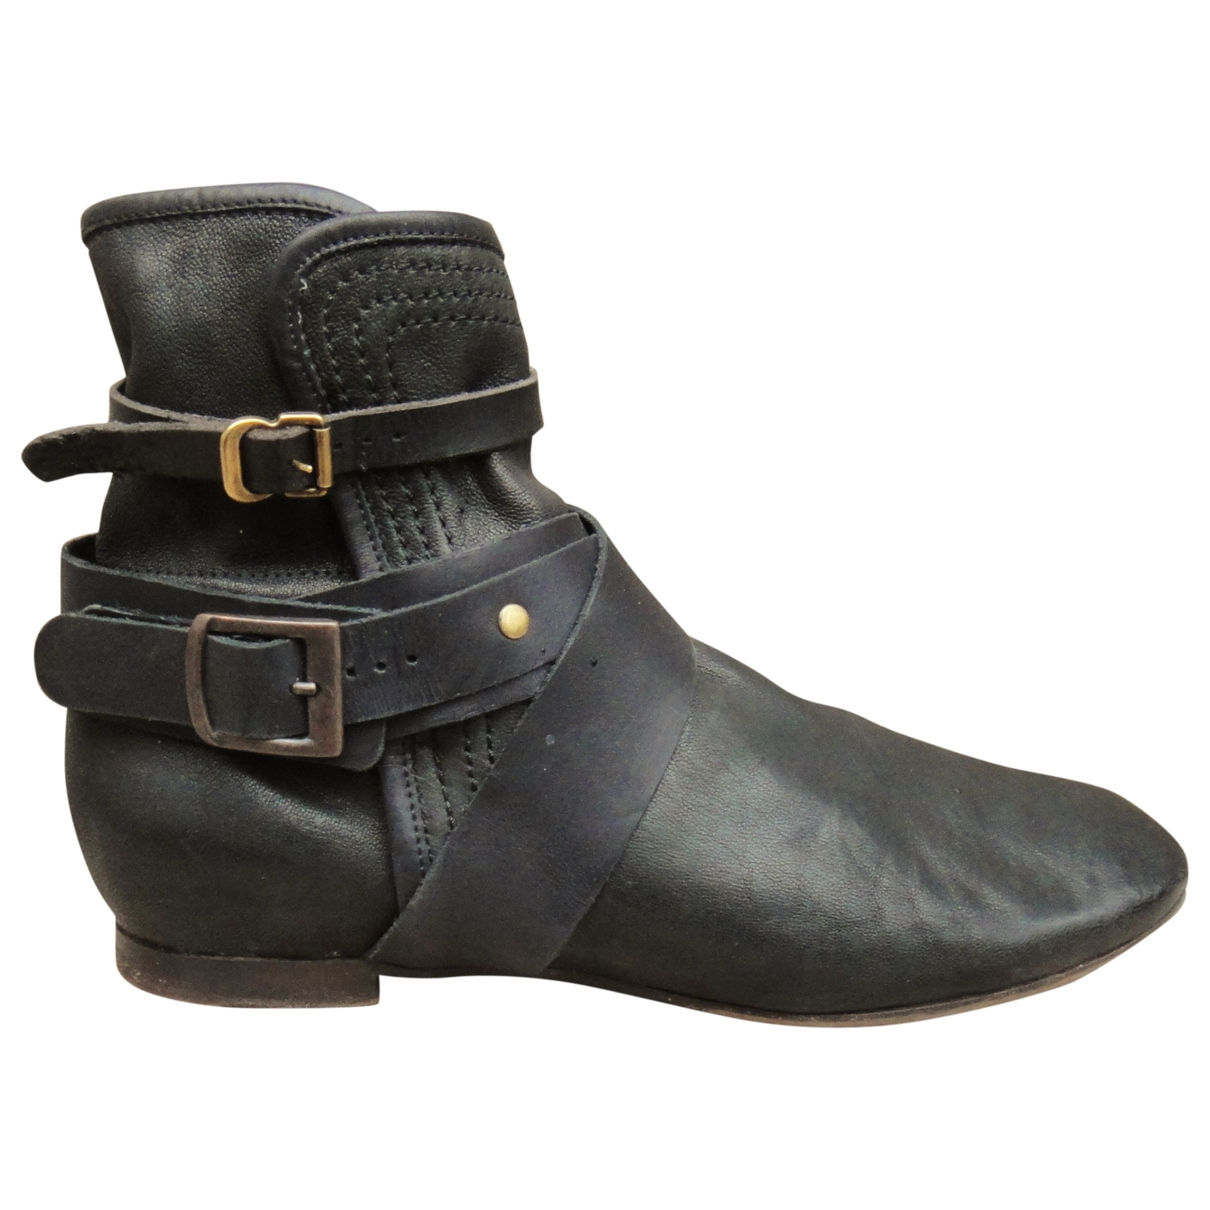 Chloé \N Black Leather Ankle boots for Women 38.5 EU